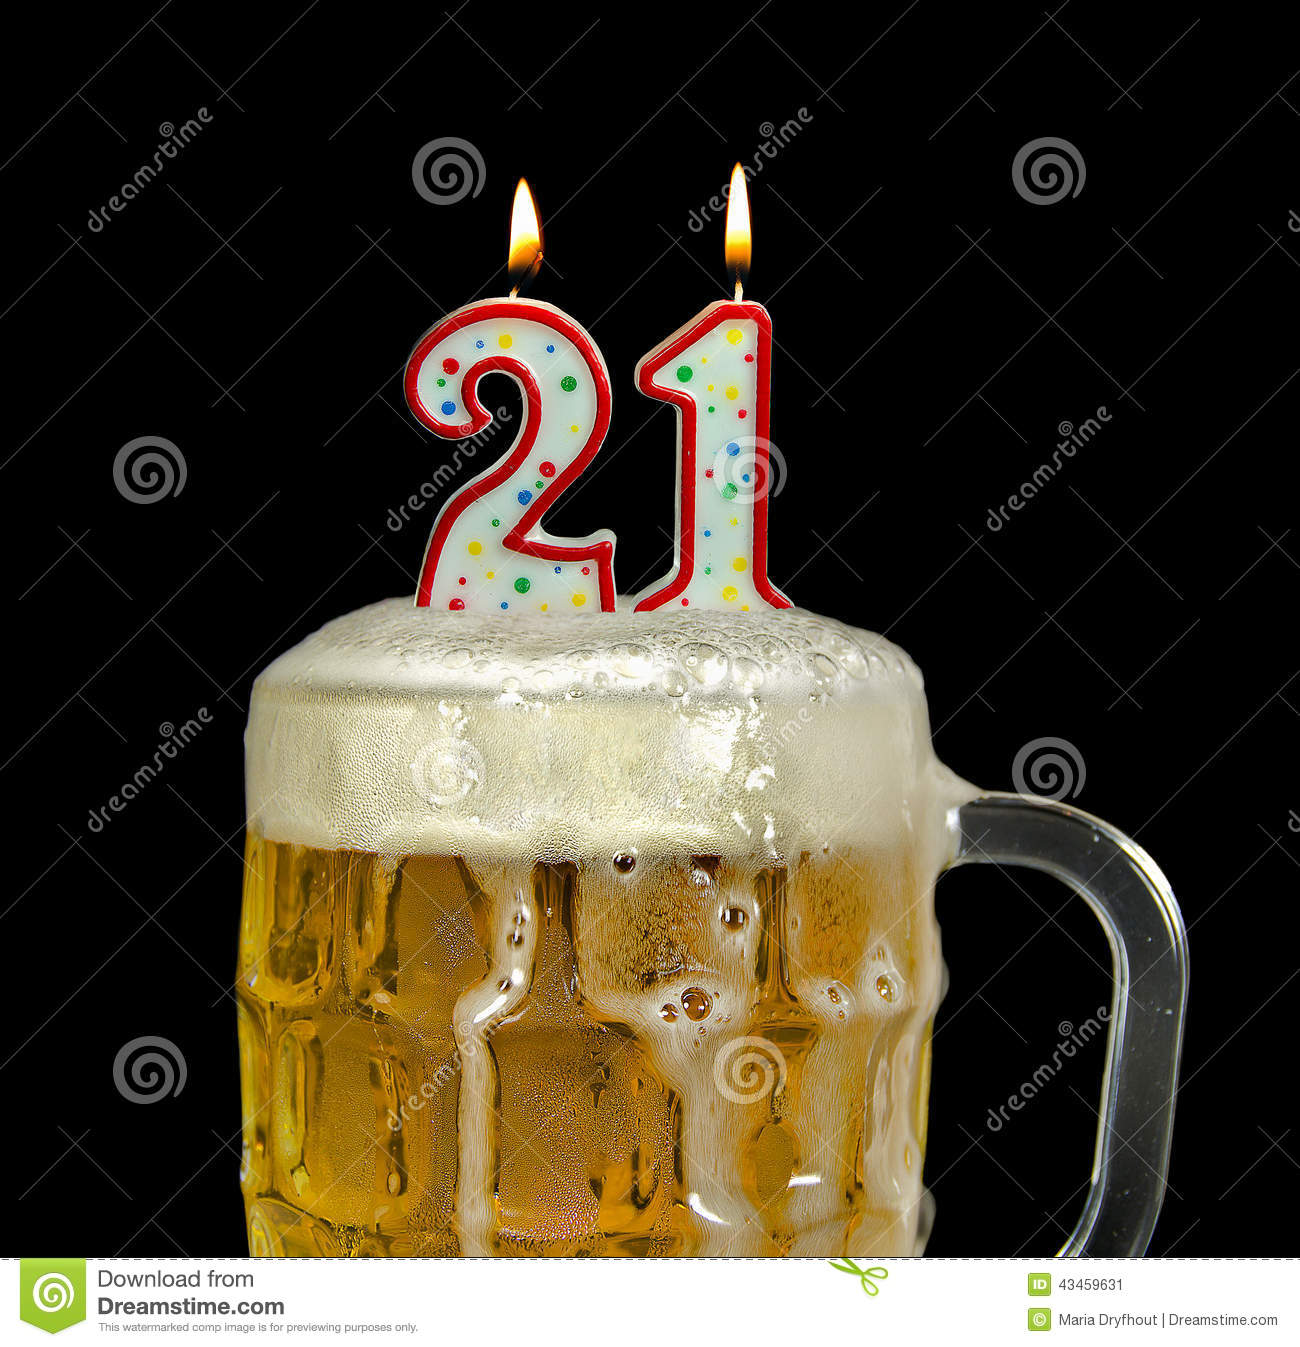 Birthday Of Candles Drink - Birthday 21st Beer Image For 43459631 In Stock